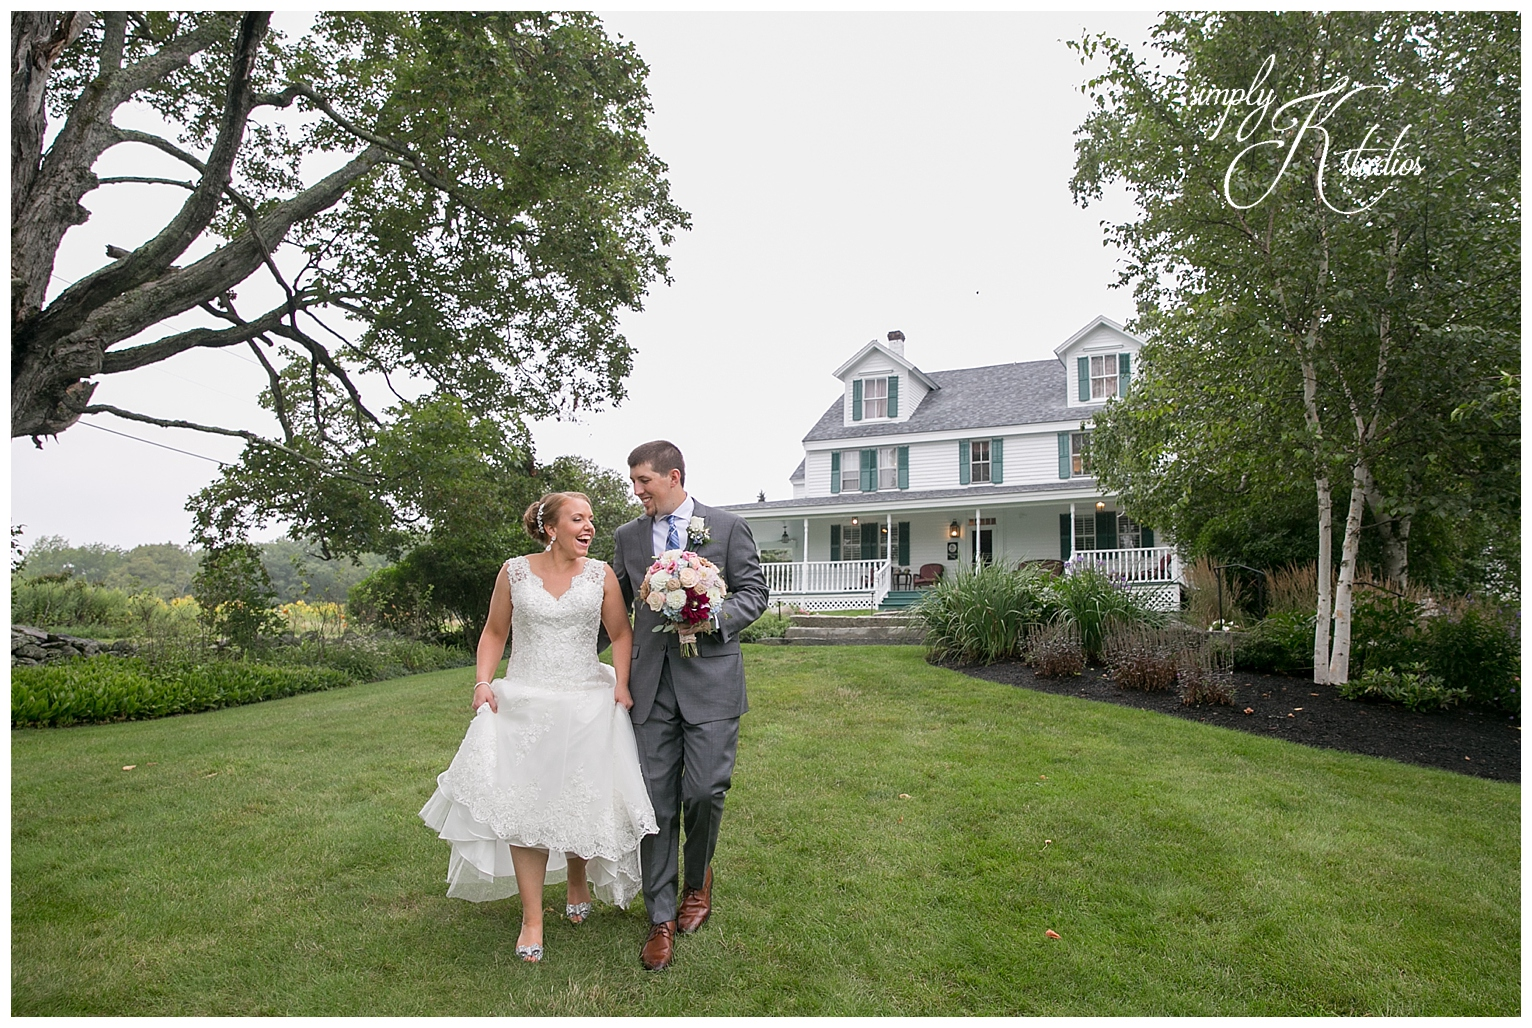 Harrington Farm Wedding Venue.jpg